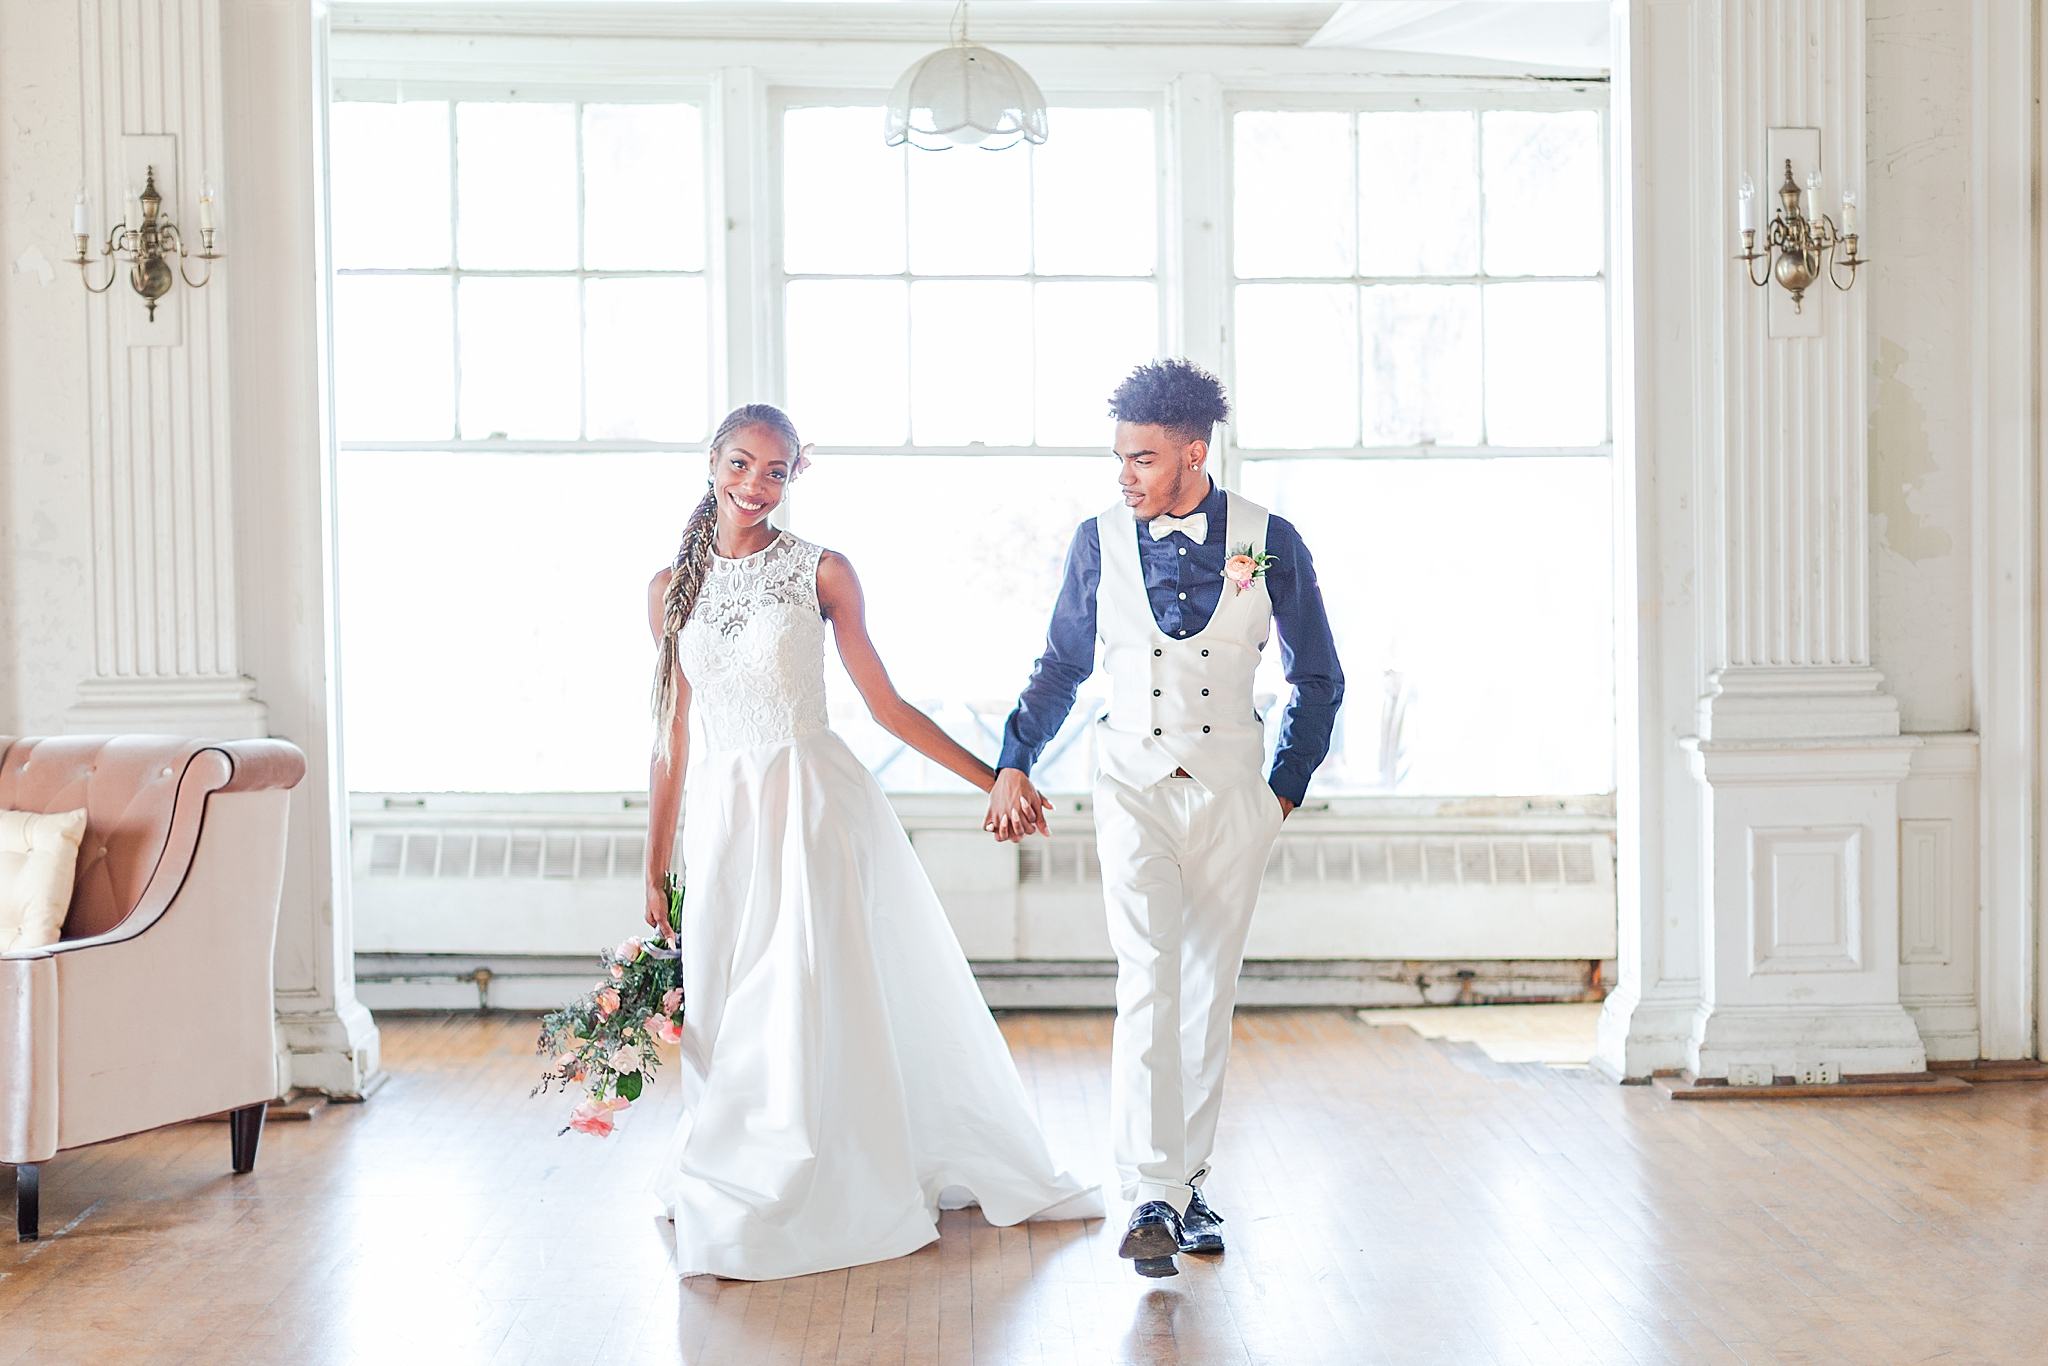 intimate-elopement-wedding-photography-at-belle-isle-boat-house-detroit-michigan-by-courtney-carolyn-photography_0042.jpg